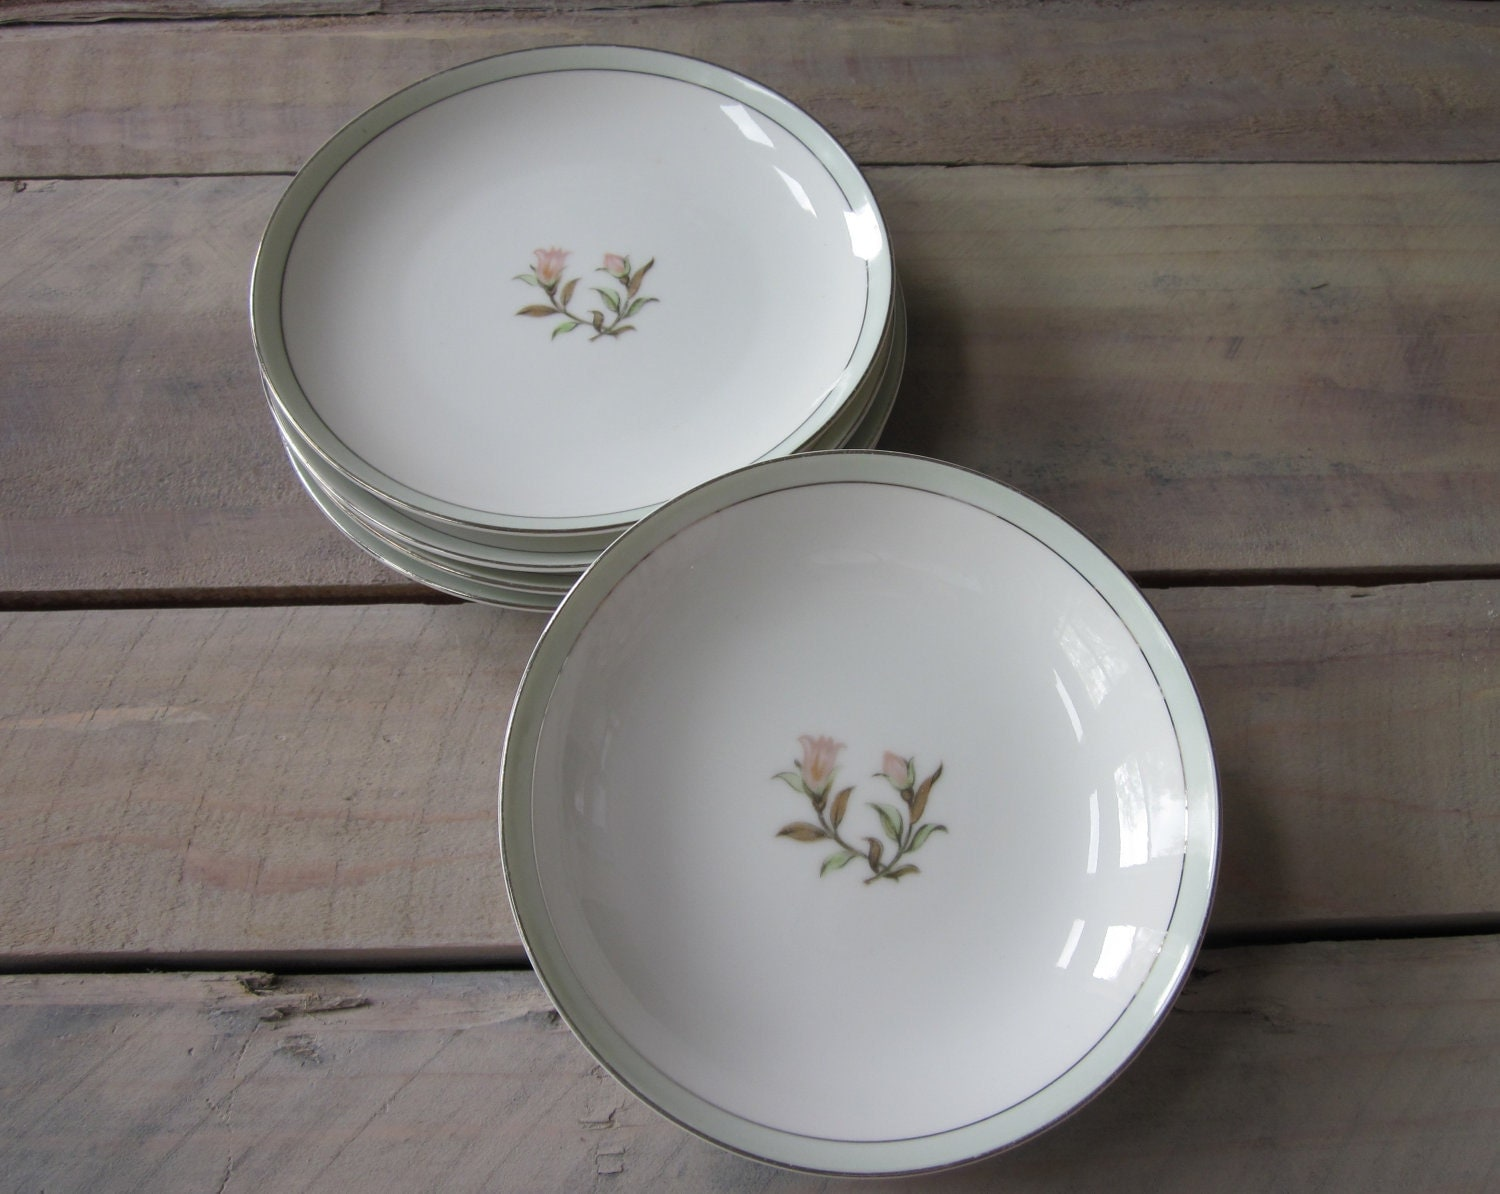 shabby chic china dishes 4 dessert plates and 2 bowls. Black Bedroom Furniture Sets. Home Design Ideas